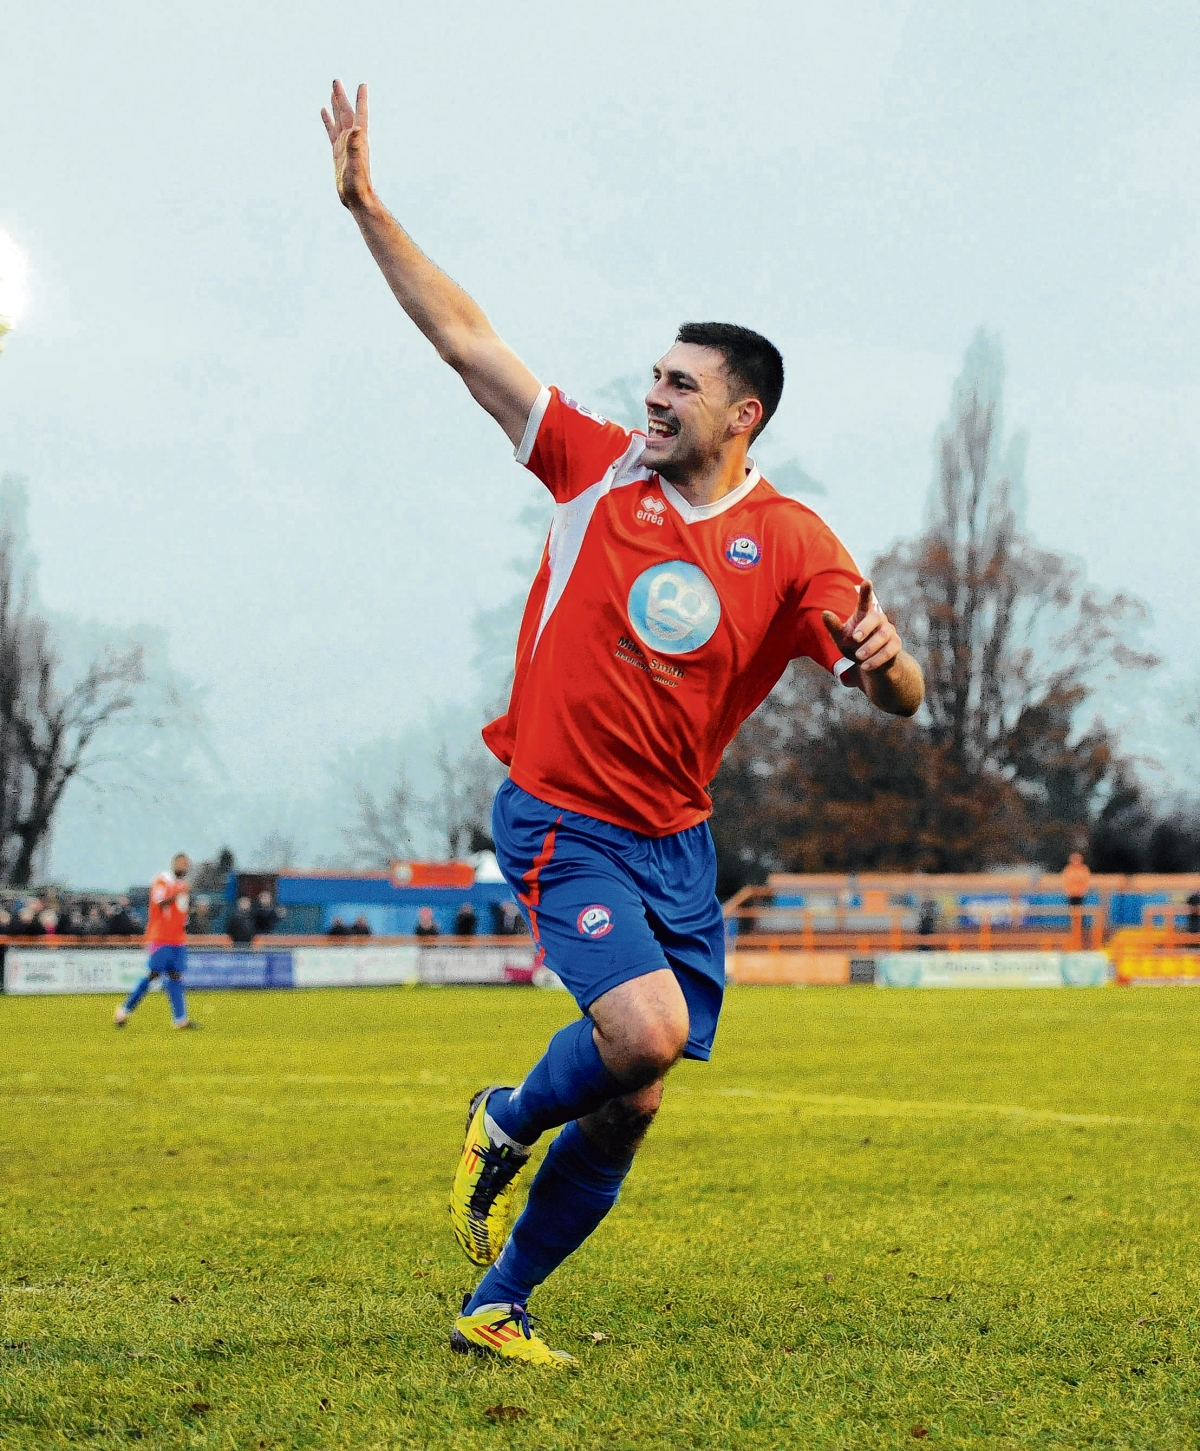 Sean Marks' goal was a consolation for Braintree. Picture: Neil Dady